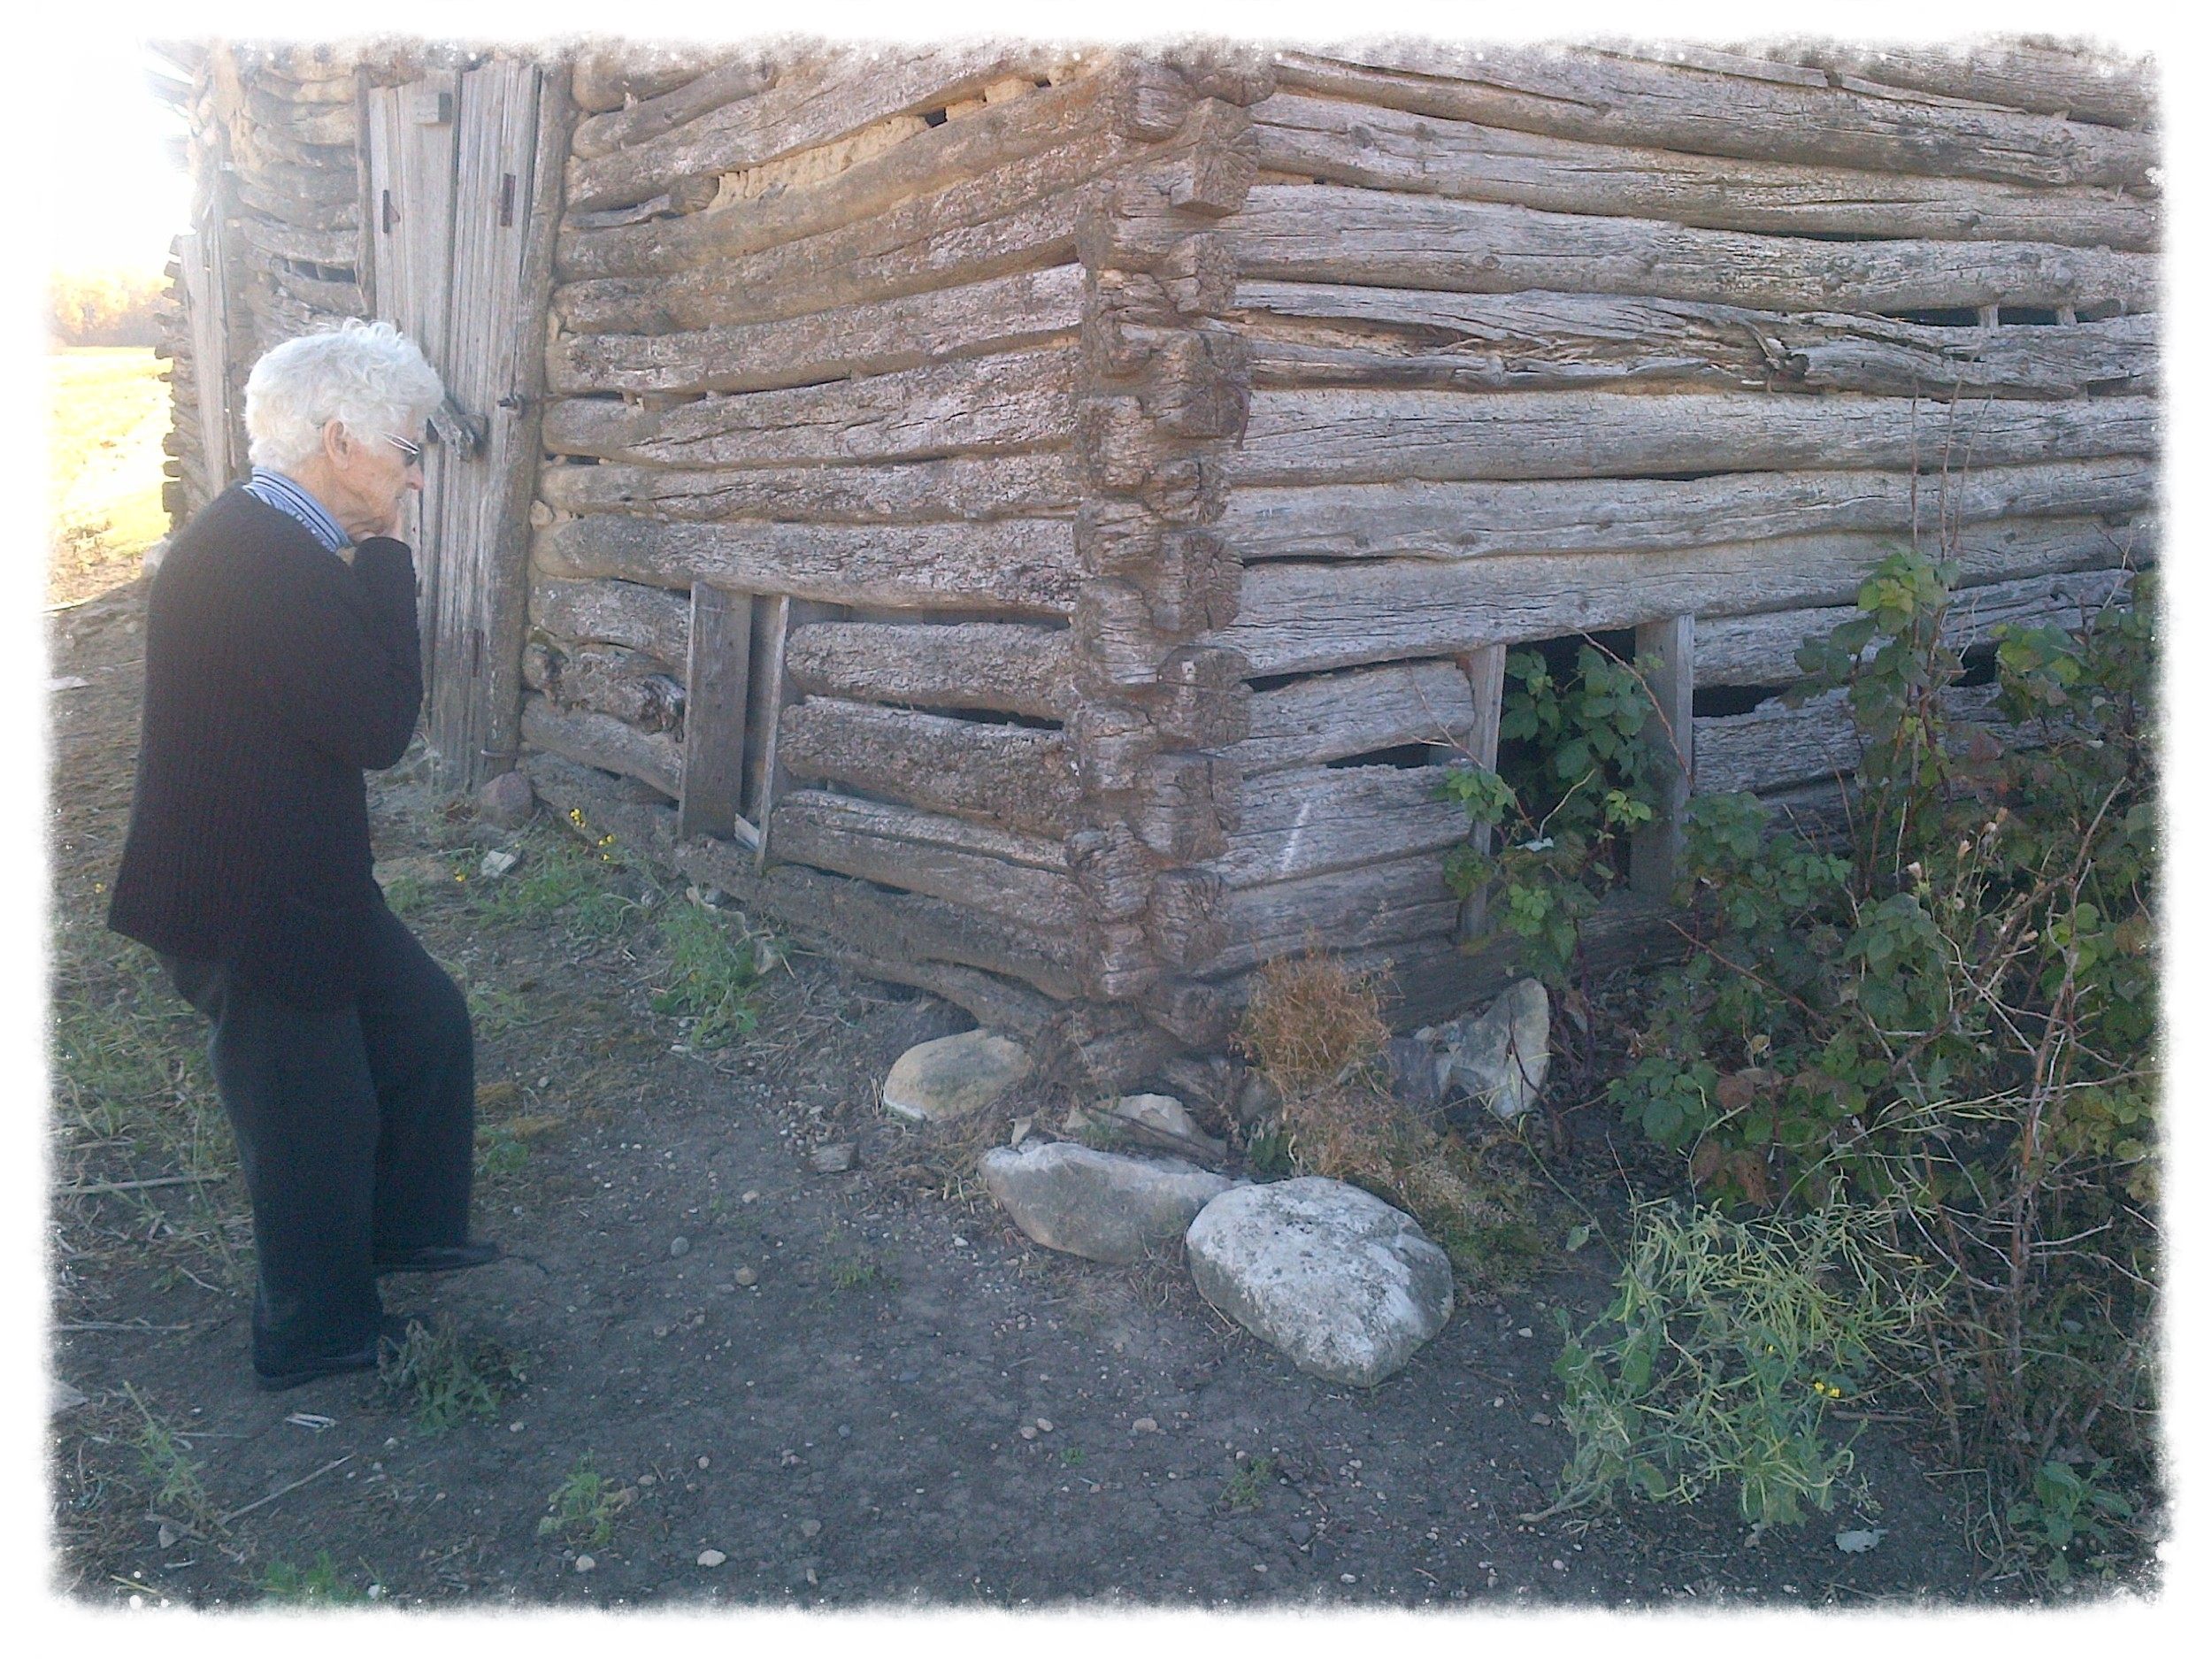 Documenting oral history of a homestead.